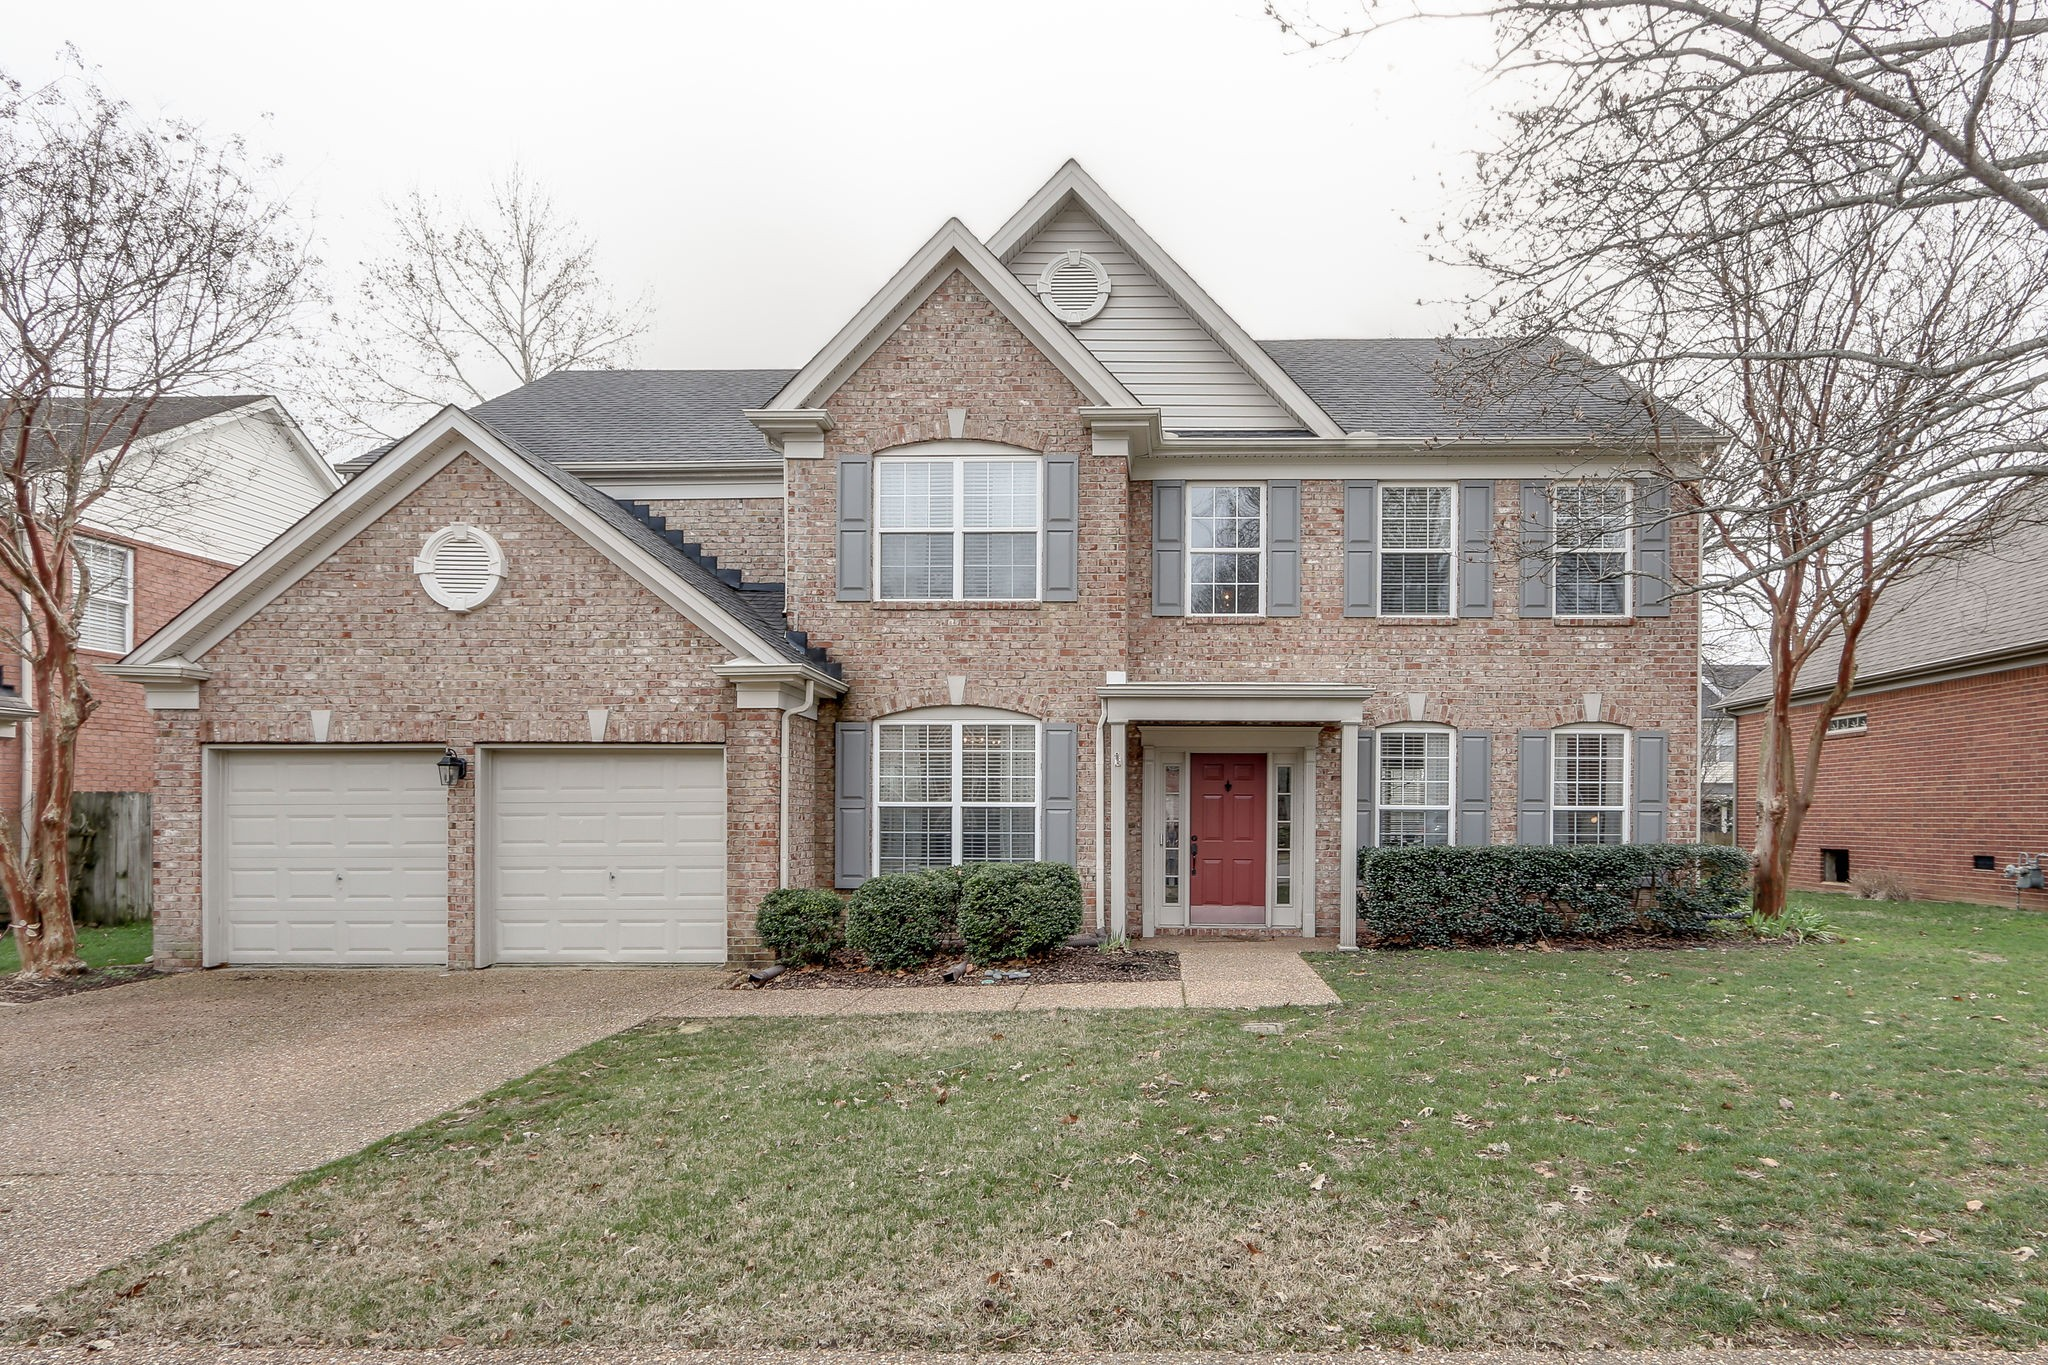 2021 Harvington Dr, Franklin, TN 37069 - Franklin, TN real estate listing